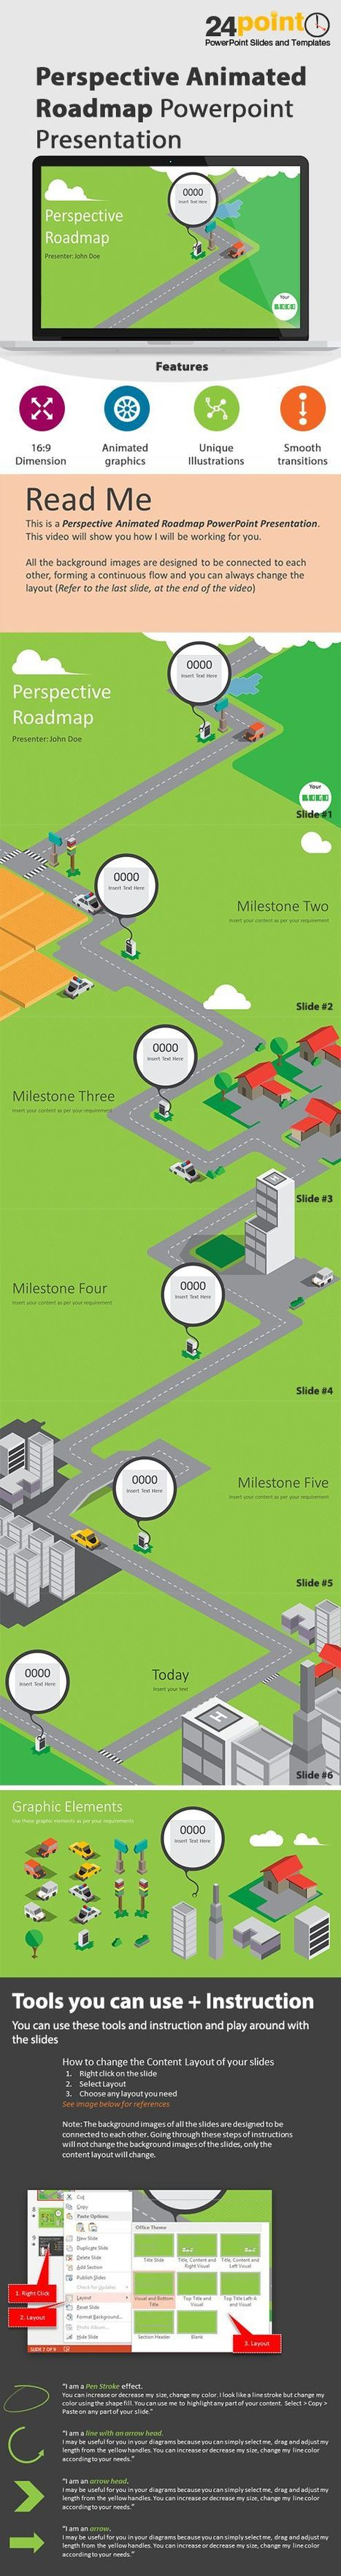 Animated Perspective Roadmap Powerpoint Template   PowerPoint Presentation Tools and Resources   Scoop.it